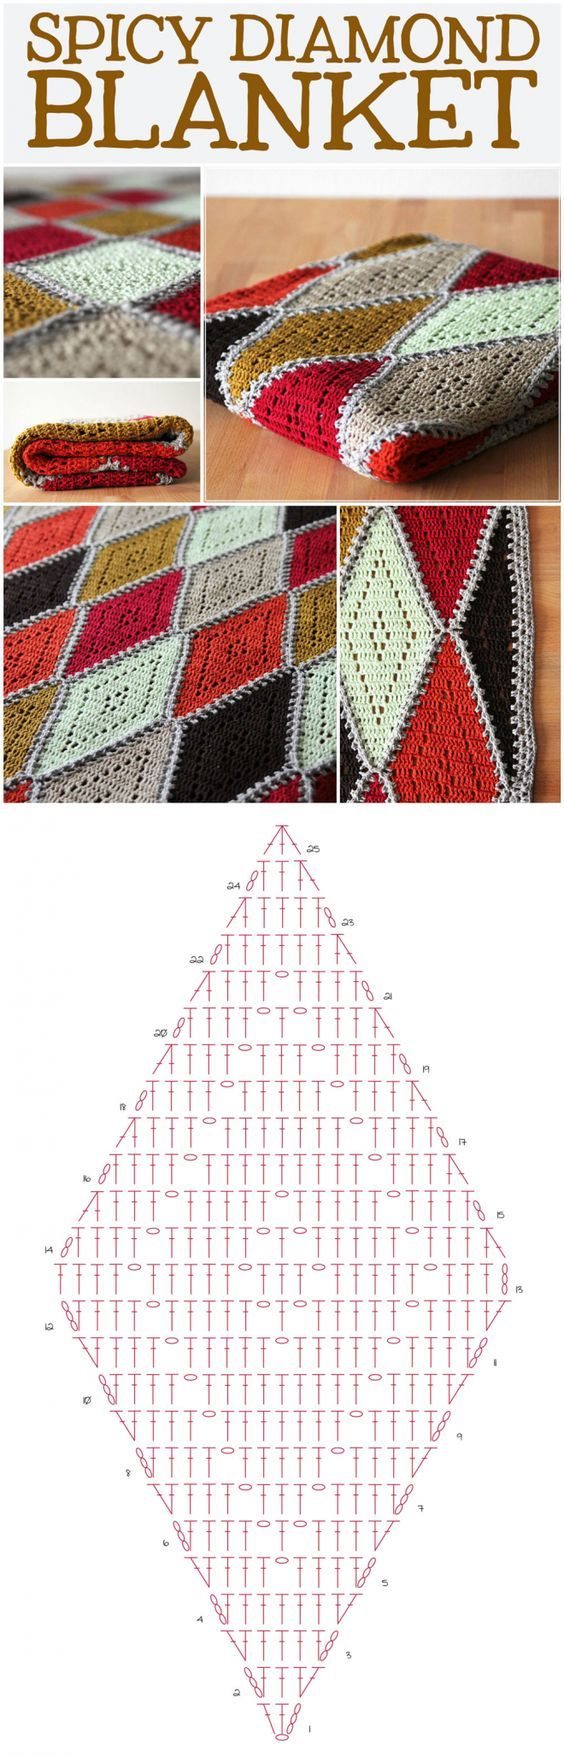 Free crochet pattern: spicy diamond blanket - haak maar Raak...♥ Deniz ♥::